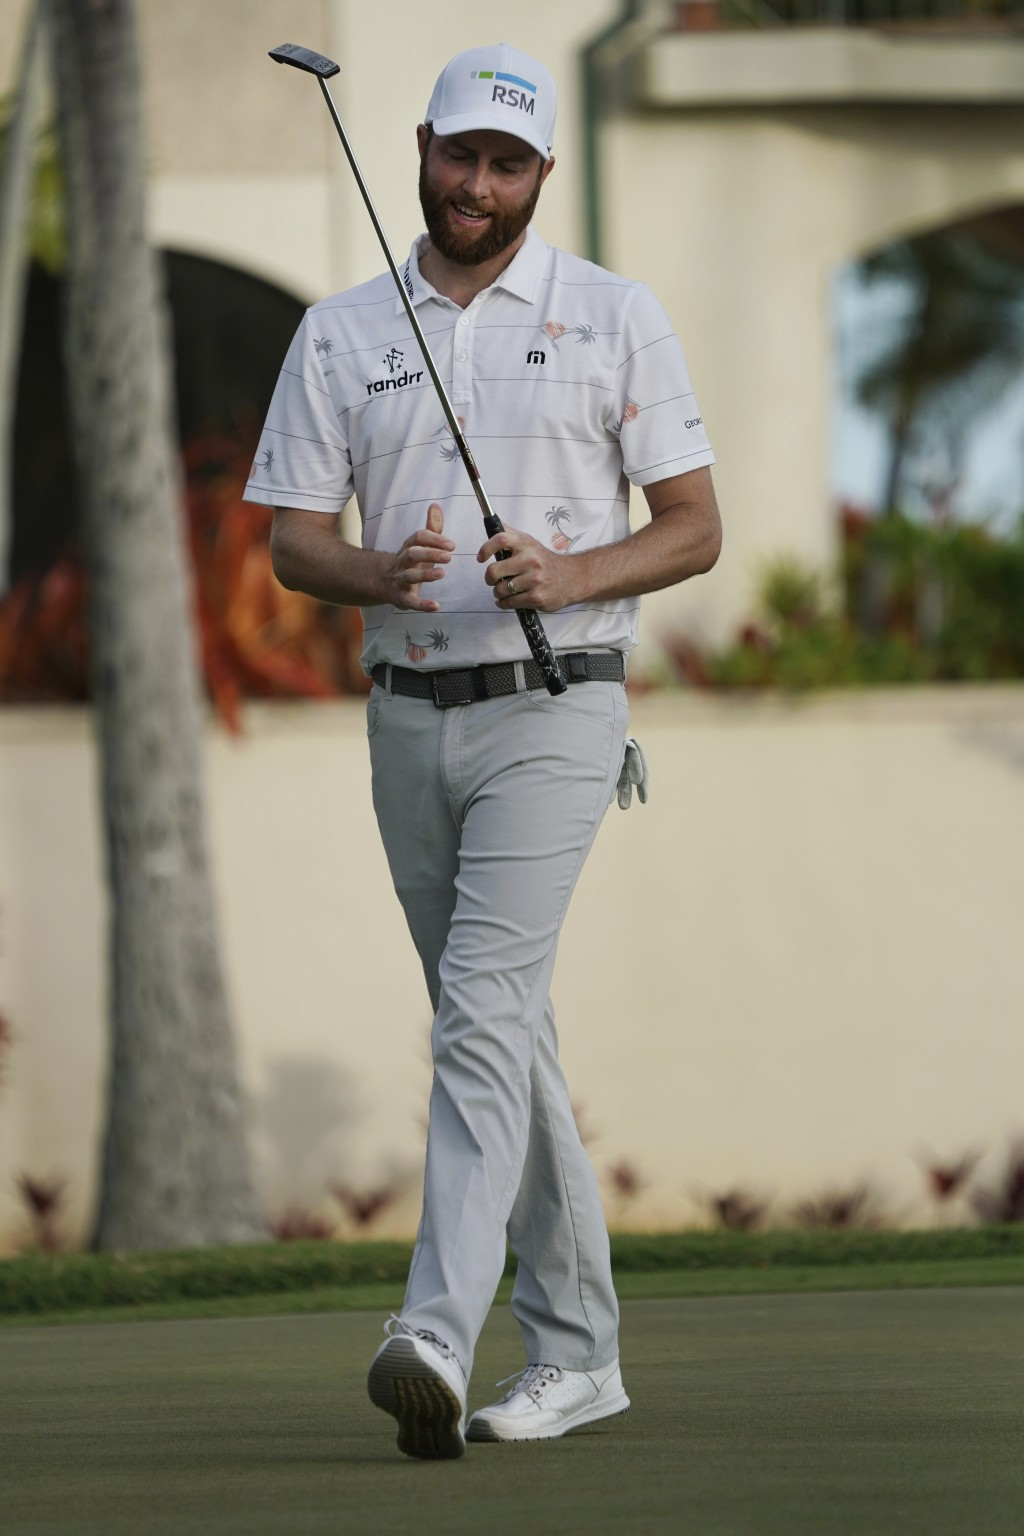 Chris Kirk reacts to his putt on the 16th green during the third round of the Sony Open golf tournament, Saturday Jan. 13, 2018, in Honolulu. (AP Phot